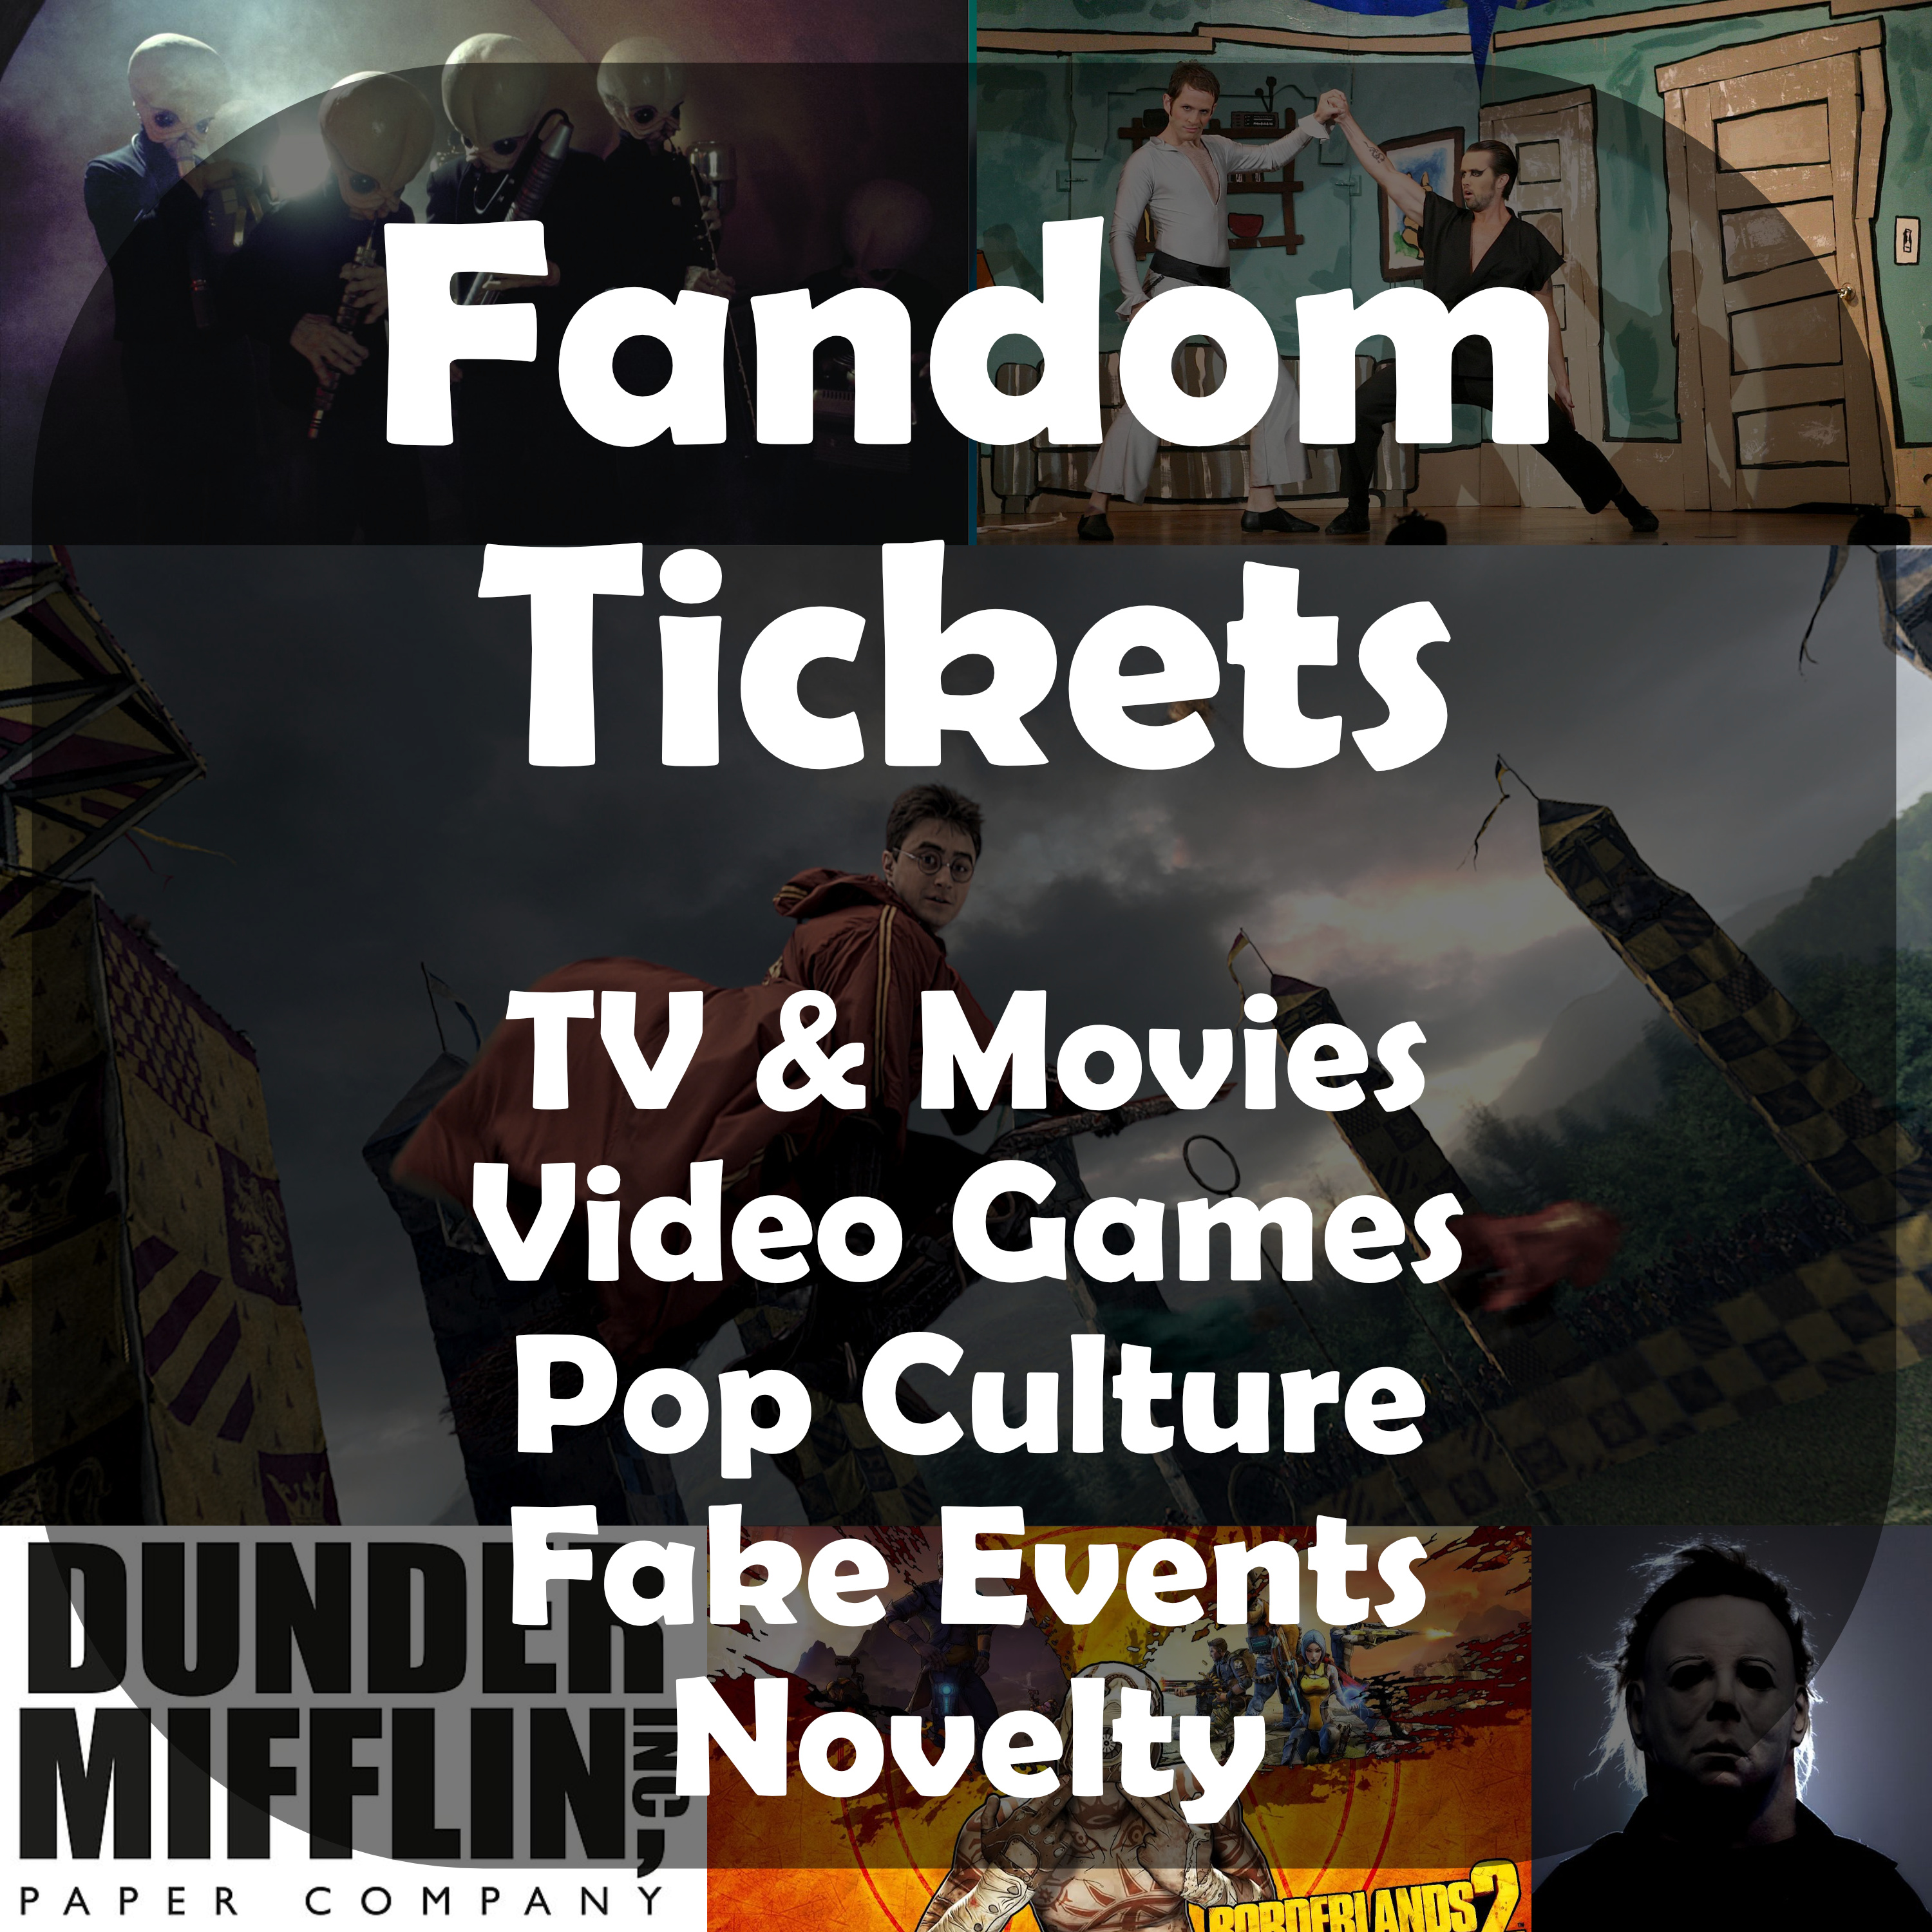 Collection Image for Fandom Tickets